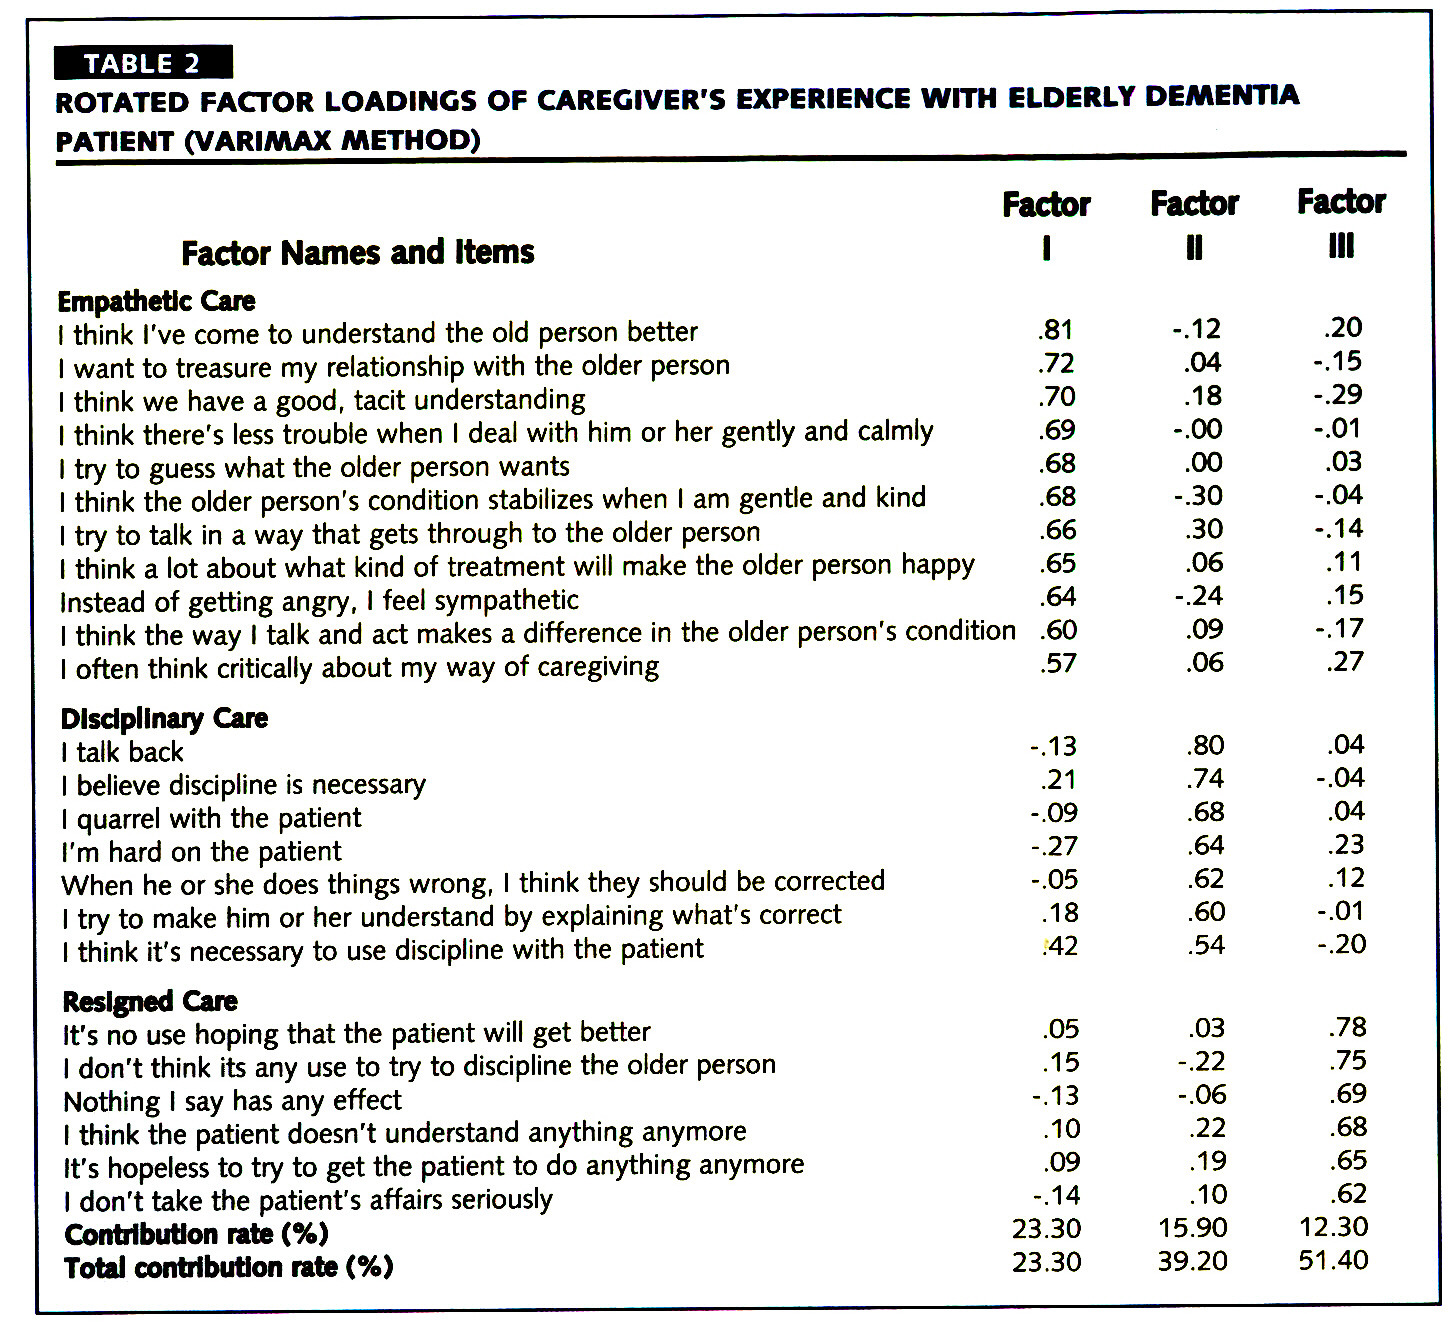 TABLE 2ROTATED FACTOR LOADINGS OF CAREGIVER'S EXPERIENCE WITH ELDERLY DEMENTIA PATIENT (VARIMAX METHOD)